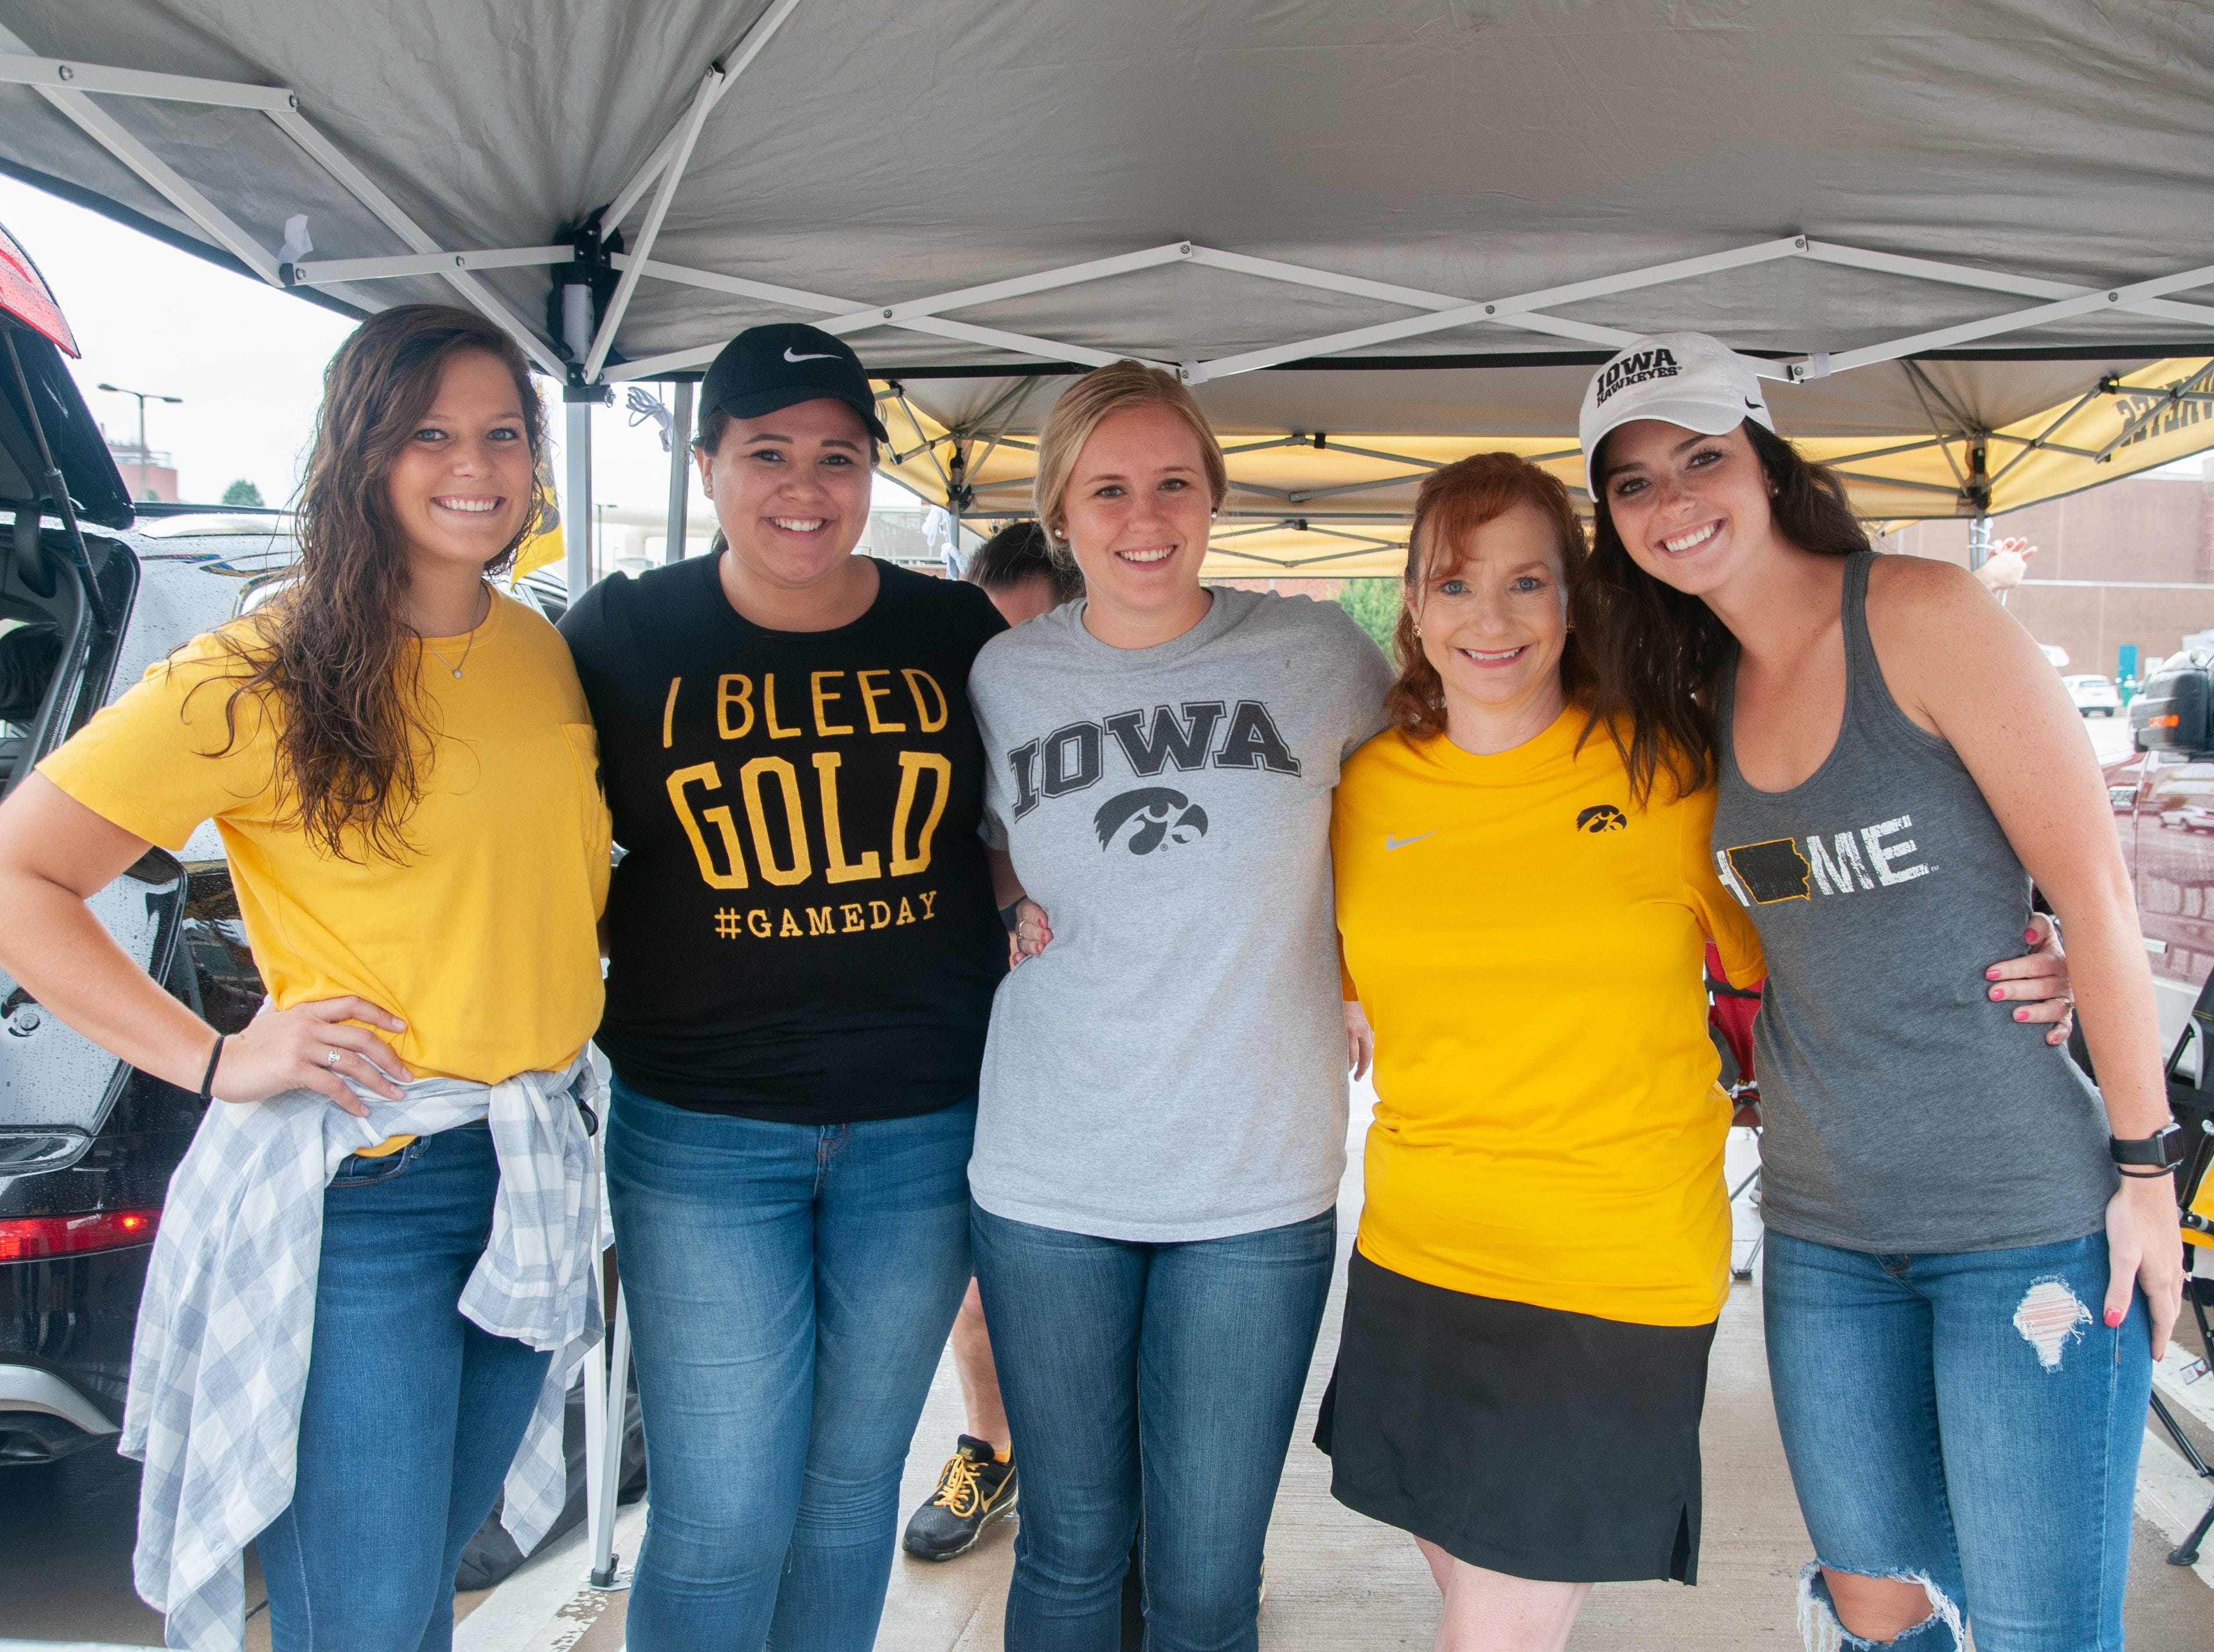 Kathryn Matson, 24, Jasmine Binion, 24, Meredith Bailey, 22, Trish Matson, 45, and Liz Finerty, 24, of the Quad Cities, Saturday, Sept. 1, 2018, while tailgating before the Iowa game against Northern Illinois in Iowa City.